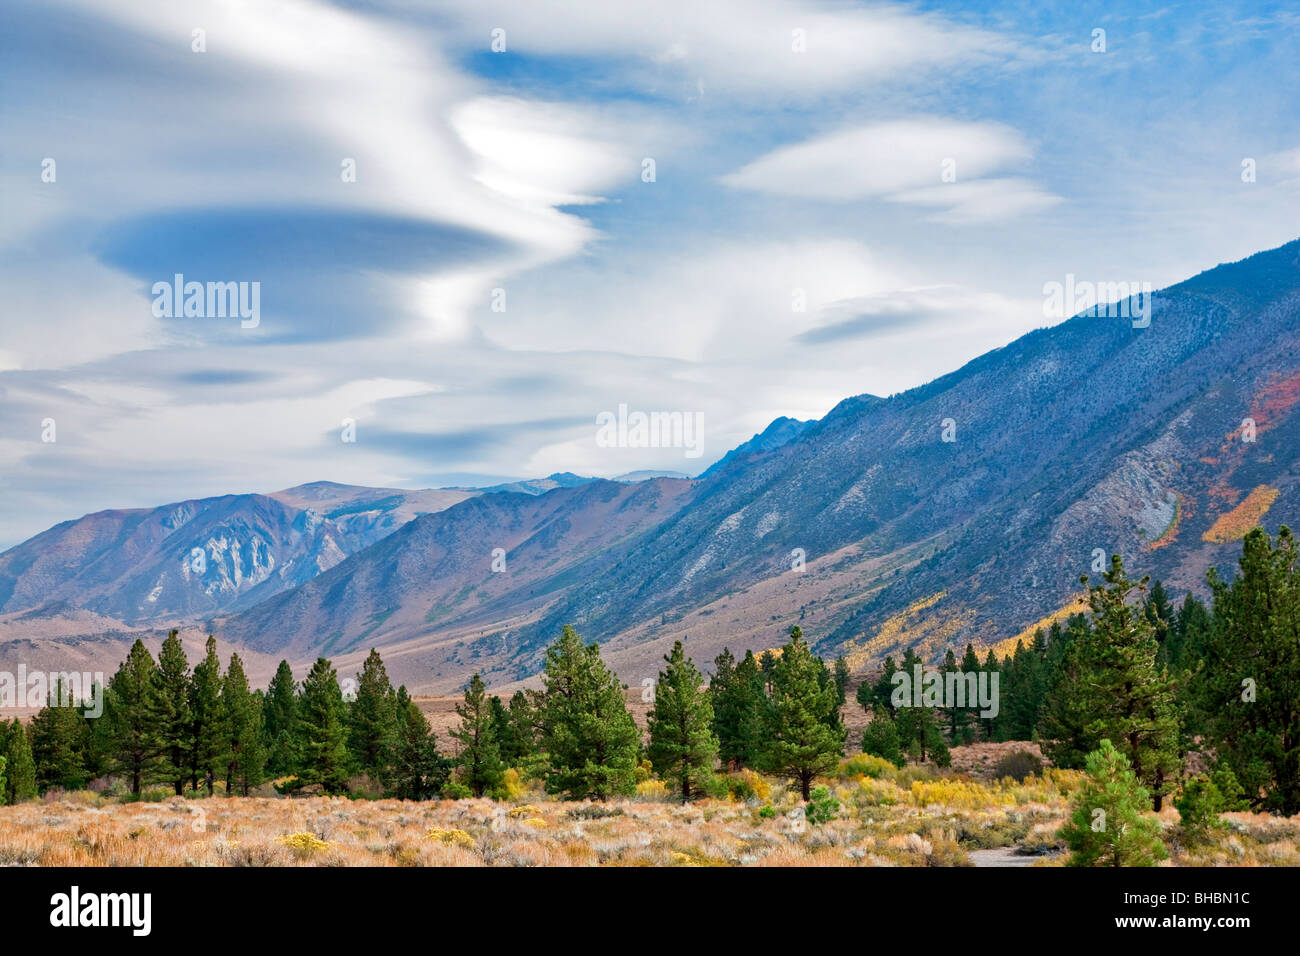 Lenticular clouds above the Eastern Sierra Mountains, California - Stock Image